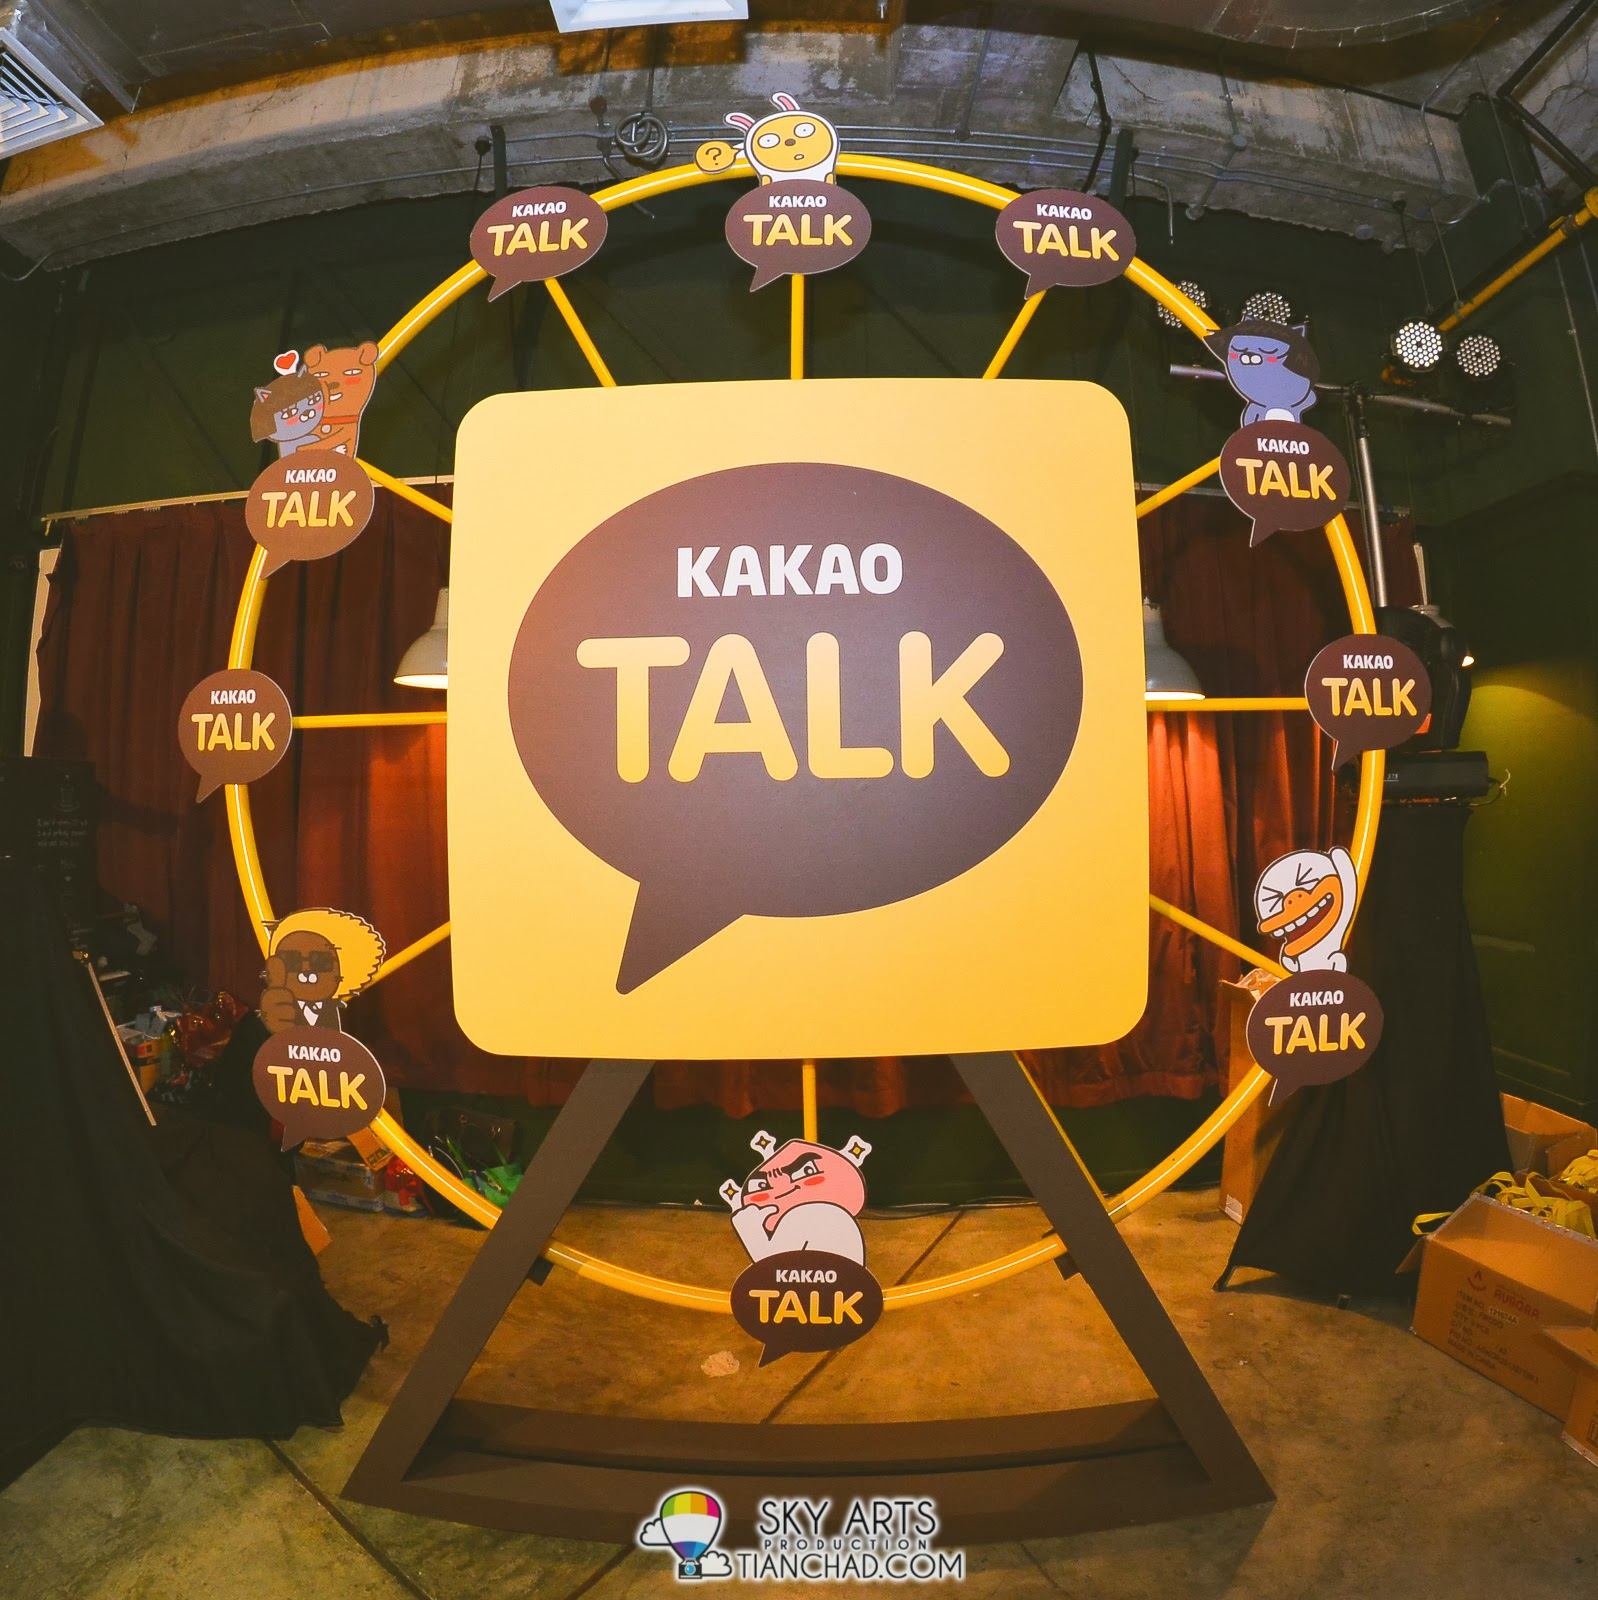 KakaoTalk Huge Ferris Wheel spotted at KakaoTalk Malaysia Epic Launch